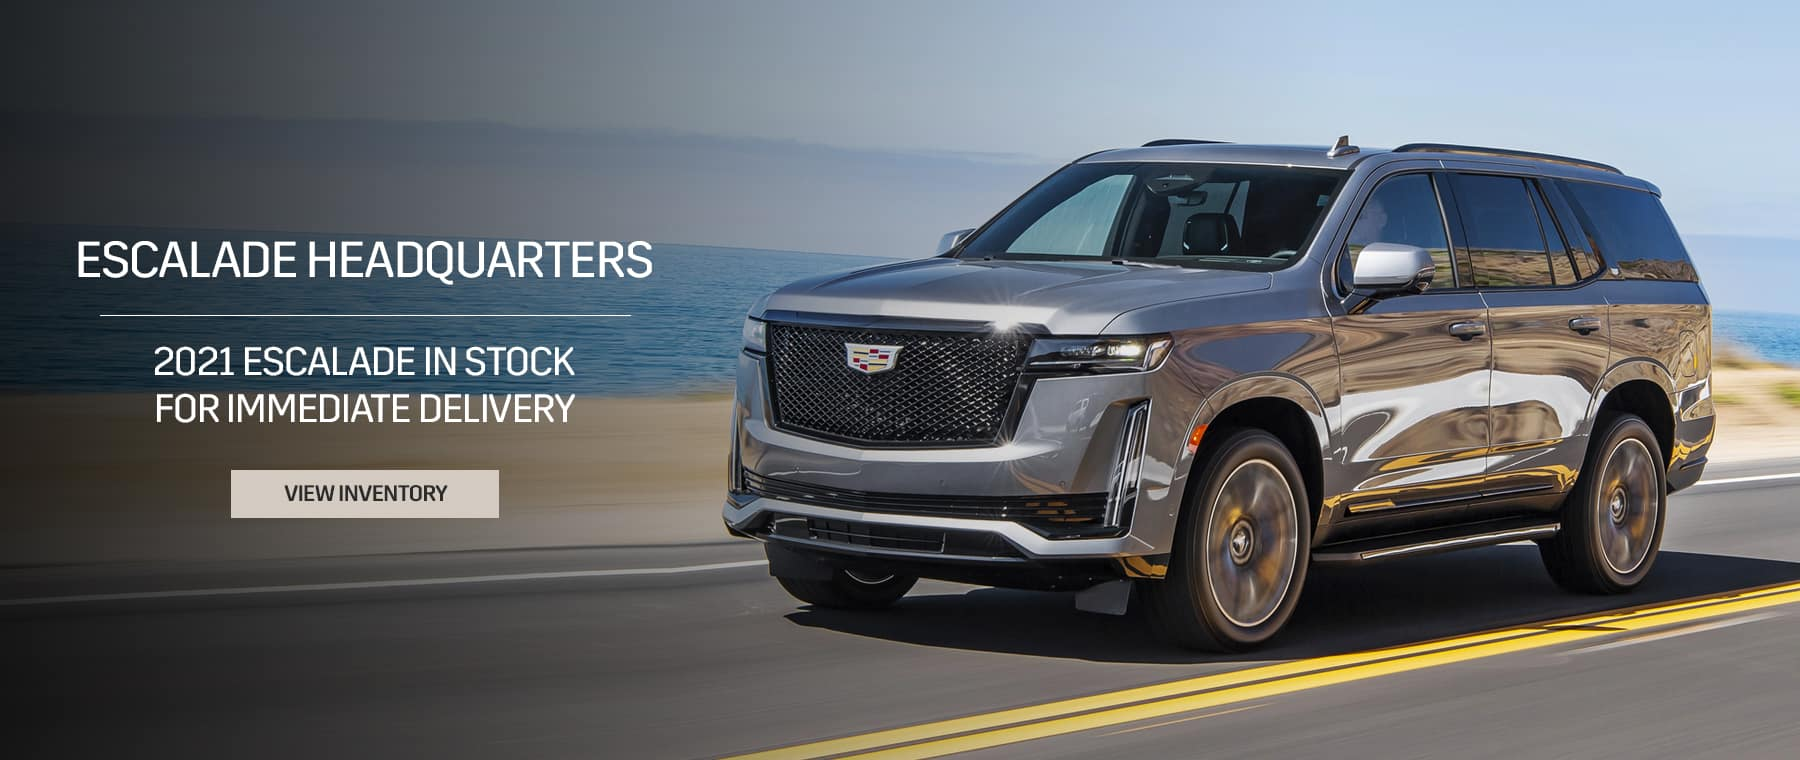 Escalade's available for pre-order